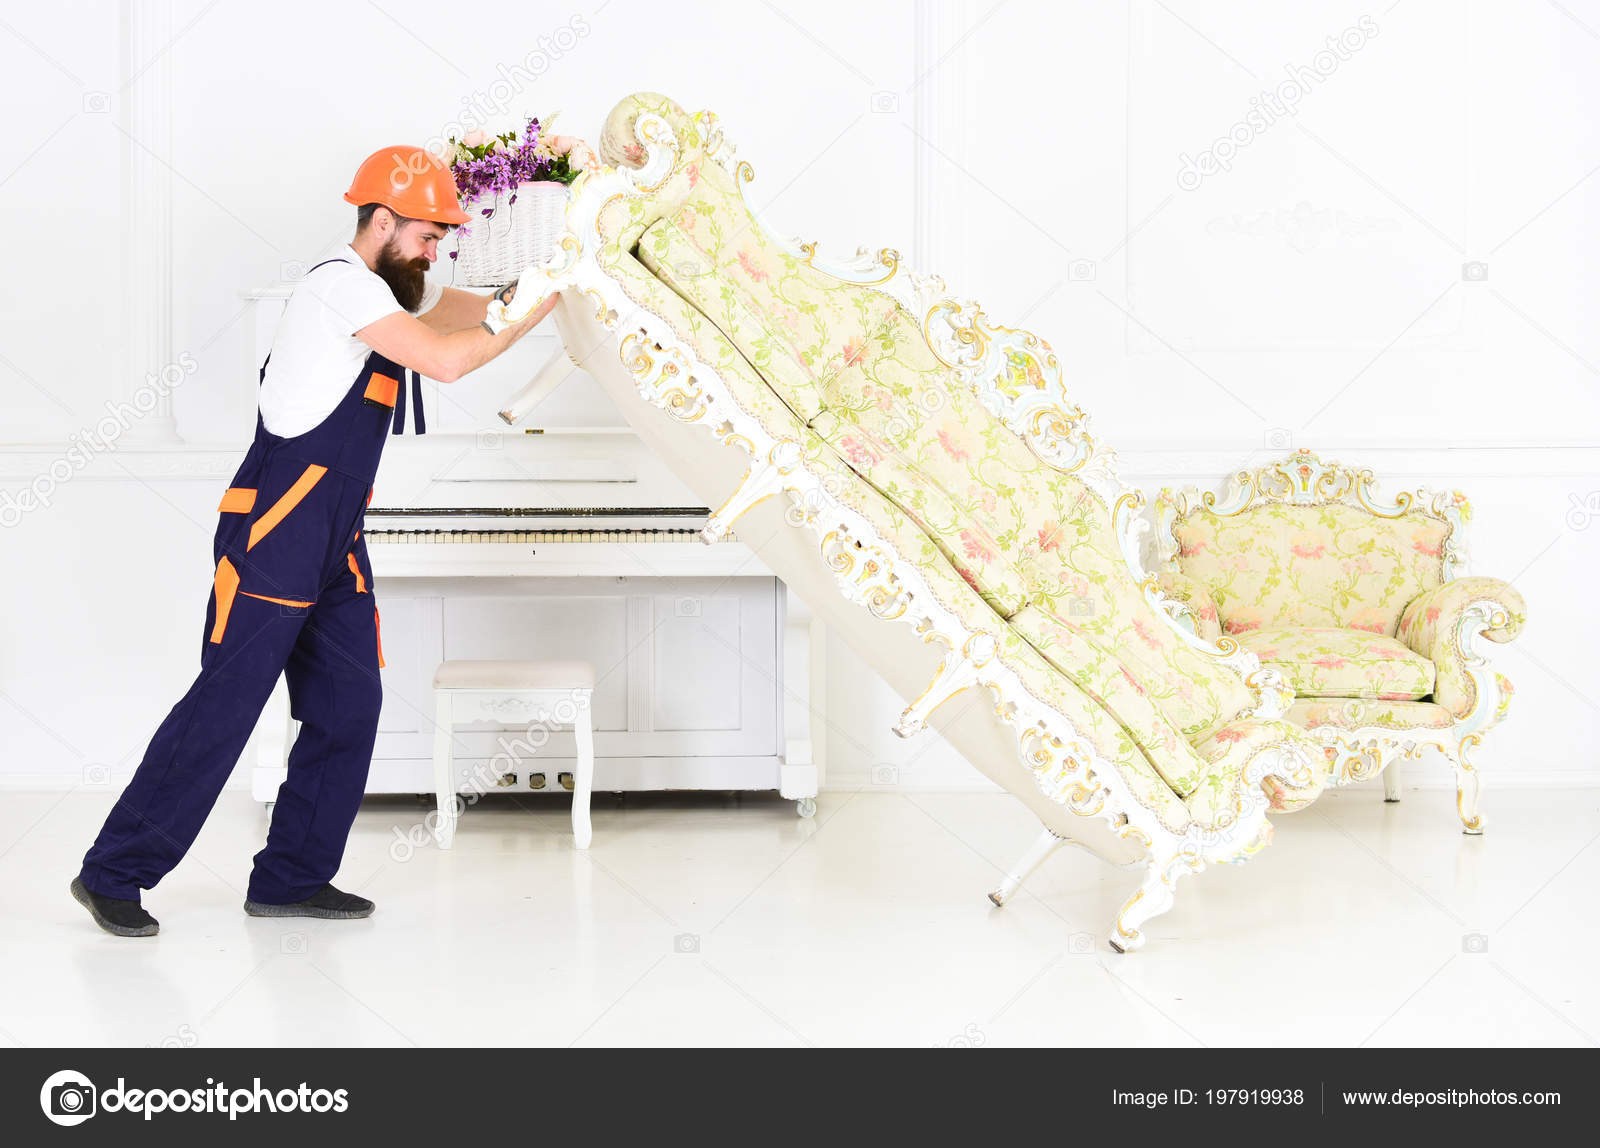 Astonishing Loader Moves Sofa Couch Man With Beard Worker In Overalls Andrewgaddart Wooden Chair Designs For Living Room Andrewgaddartcom